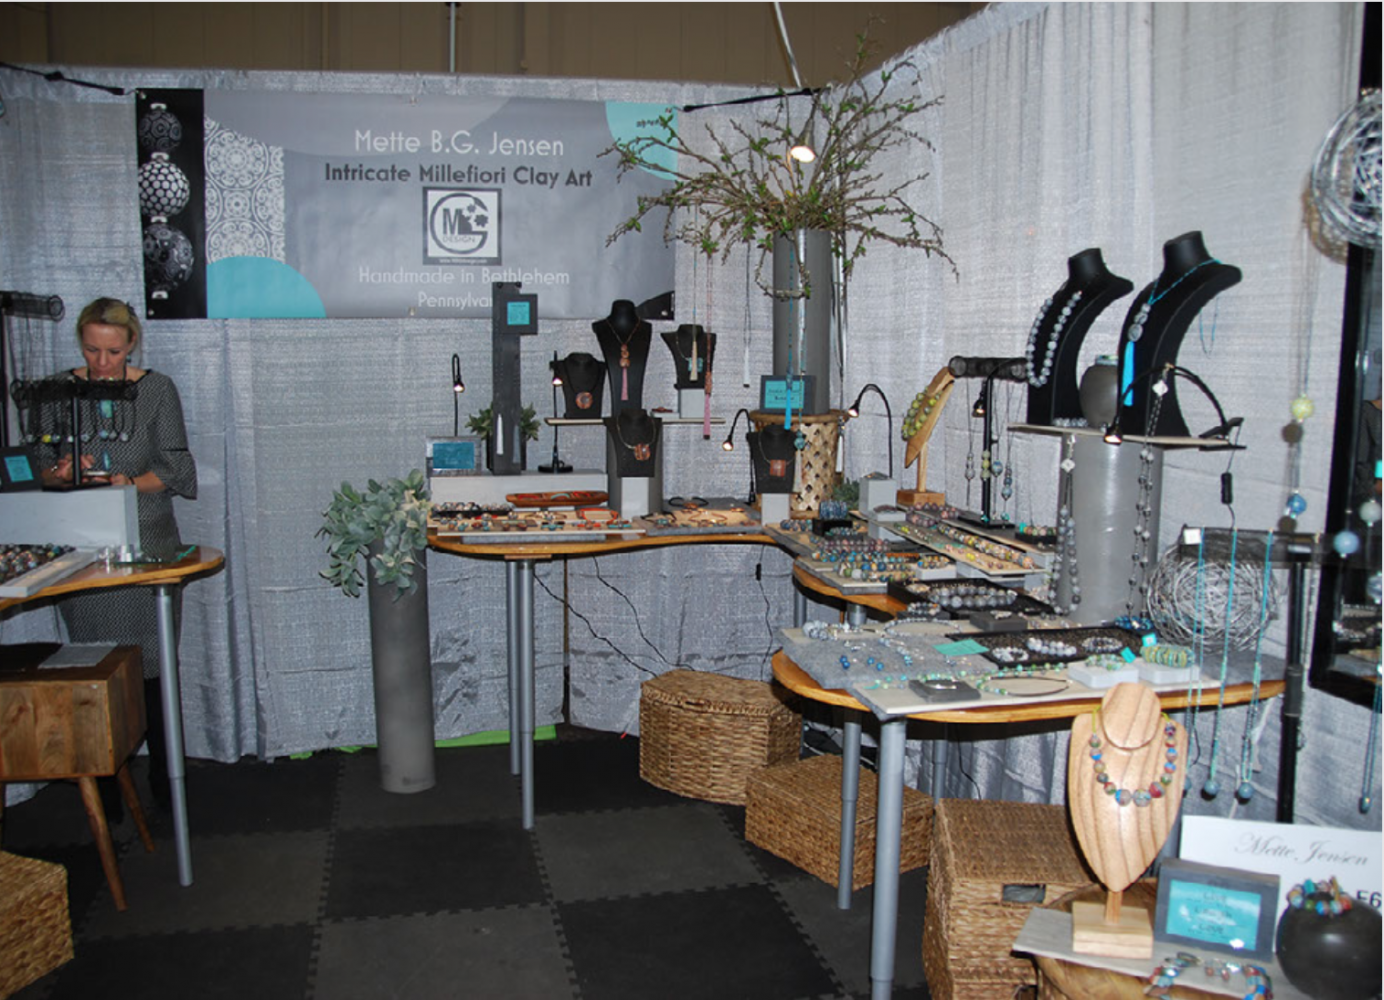 Annual CraftWestport brings artists together from around the country